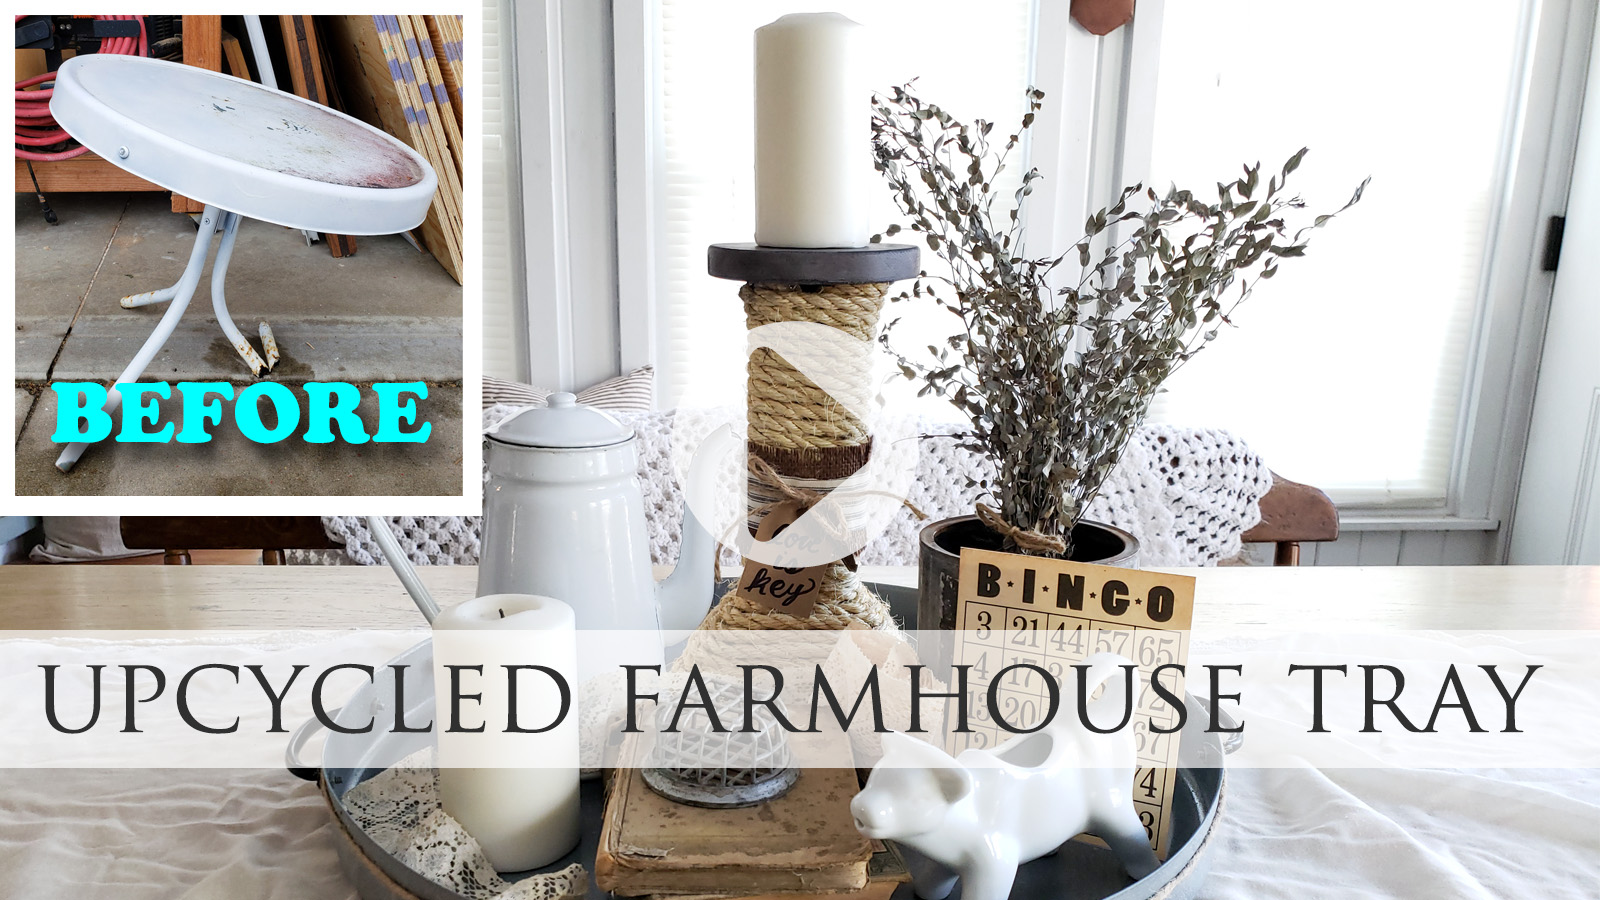 DIY Video For Upcycled Farmhouse Tray by Larissa of Prodigal Pieces | prodigalpieces.com